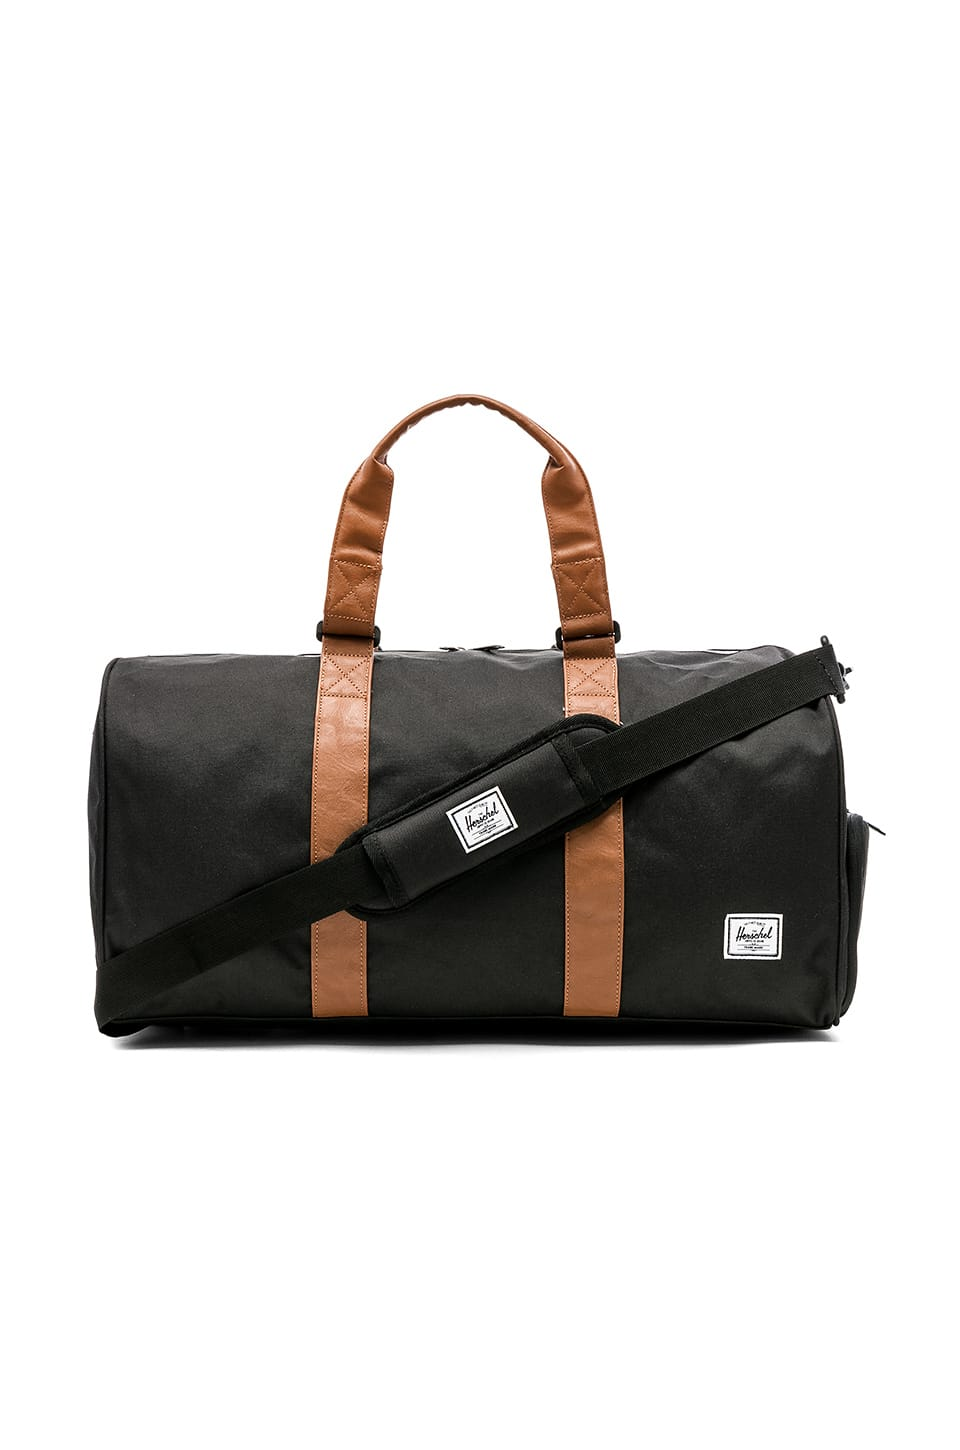 Buy Original Herschel Supply Co. Novel Duffle Bag at Indonesia ... 833086dc4b3bf